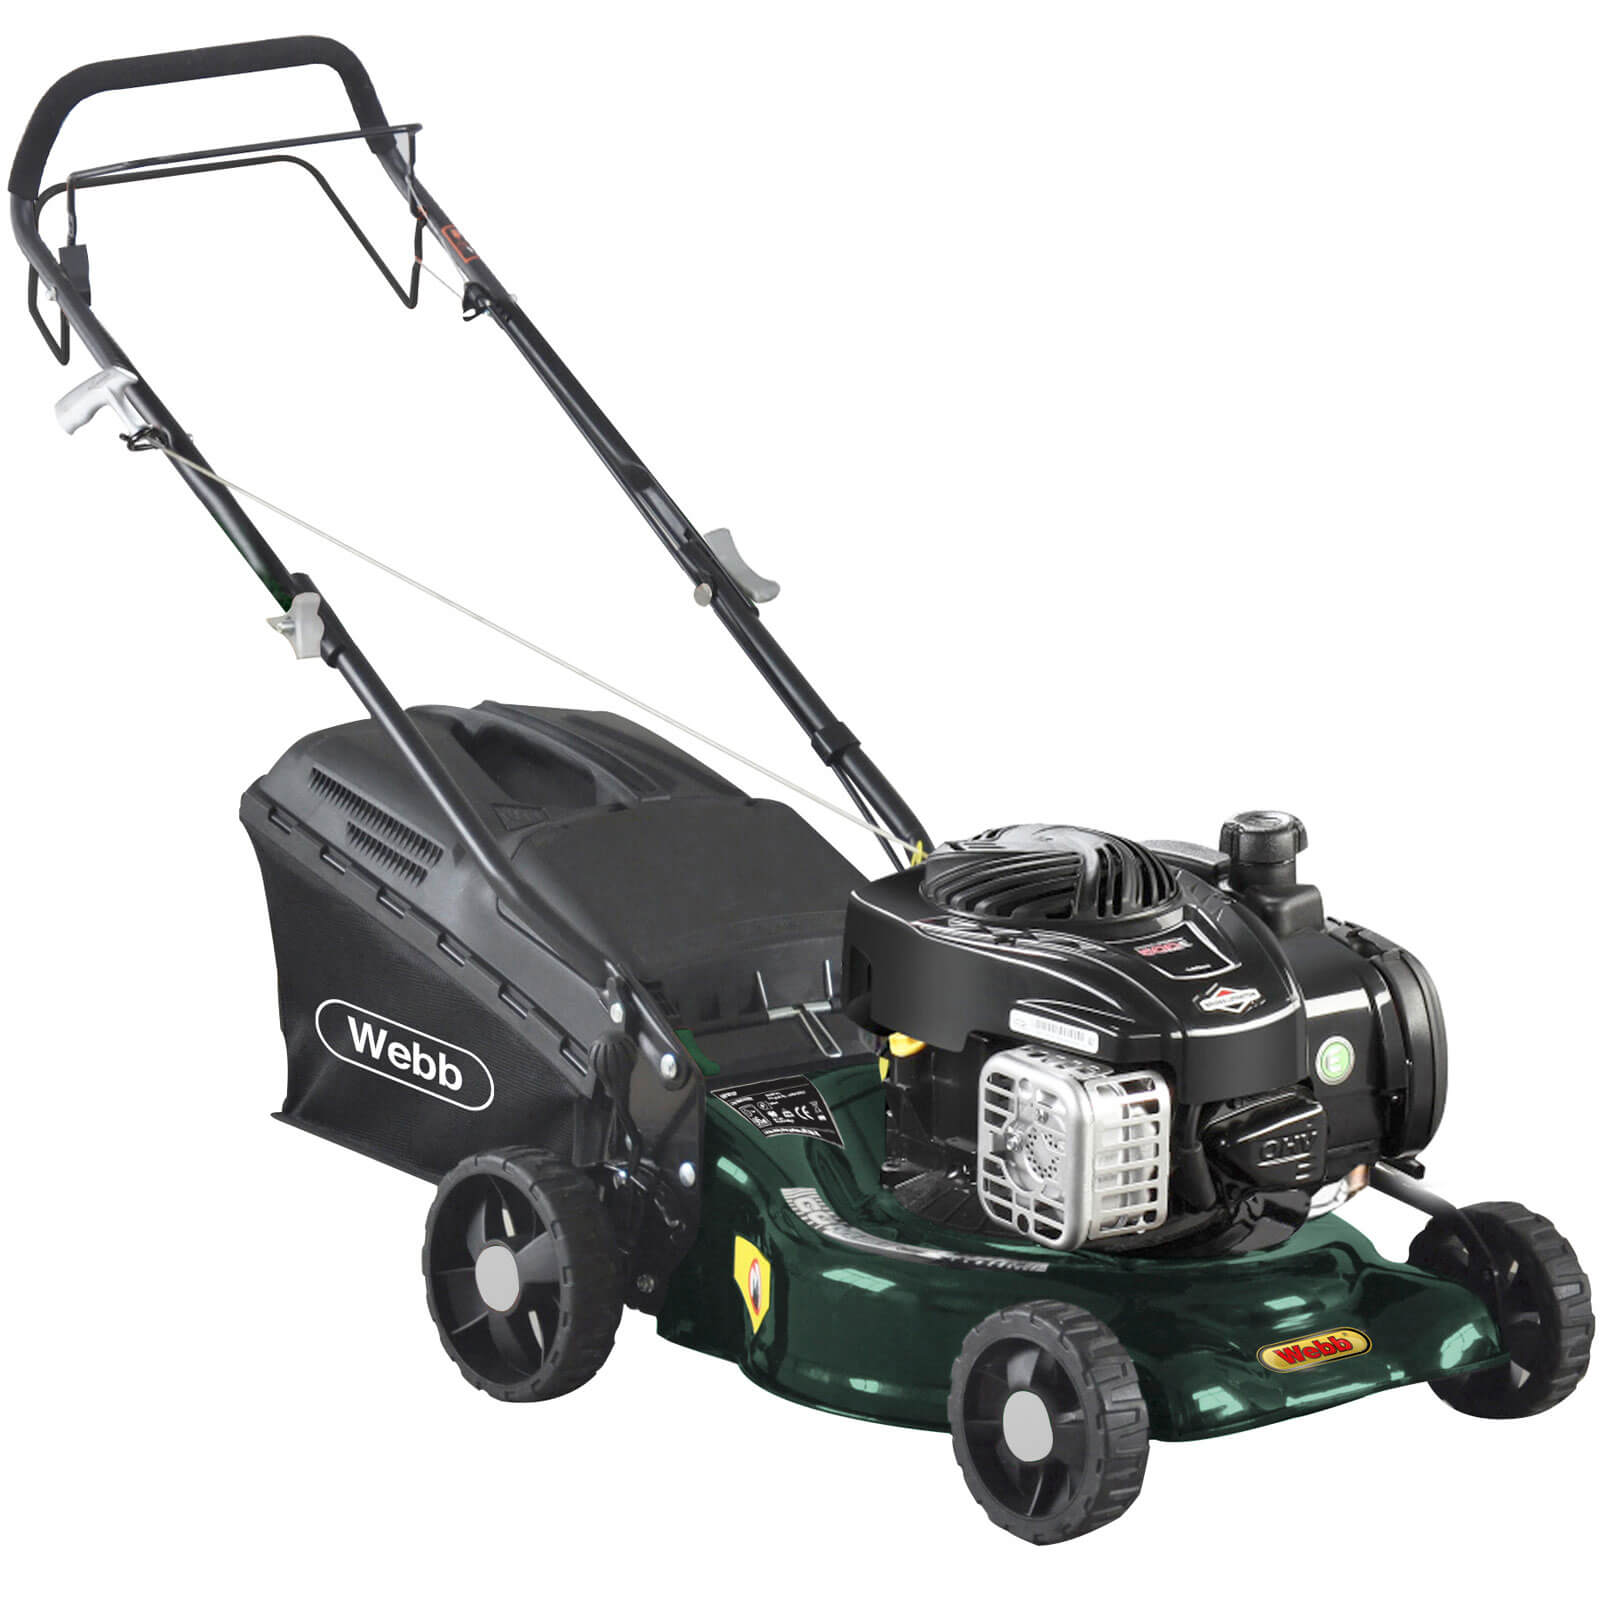 Image of Webb WER16SP Self Propelled Petrol Rotary Lawnmower 420mm